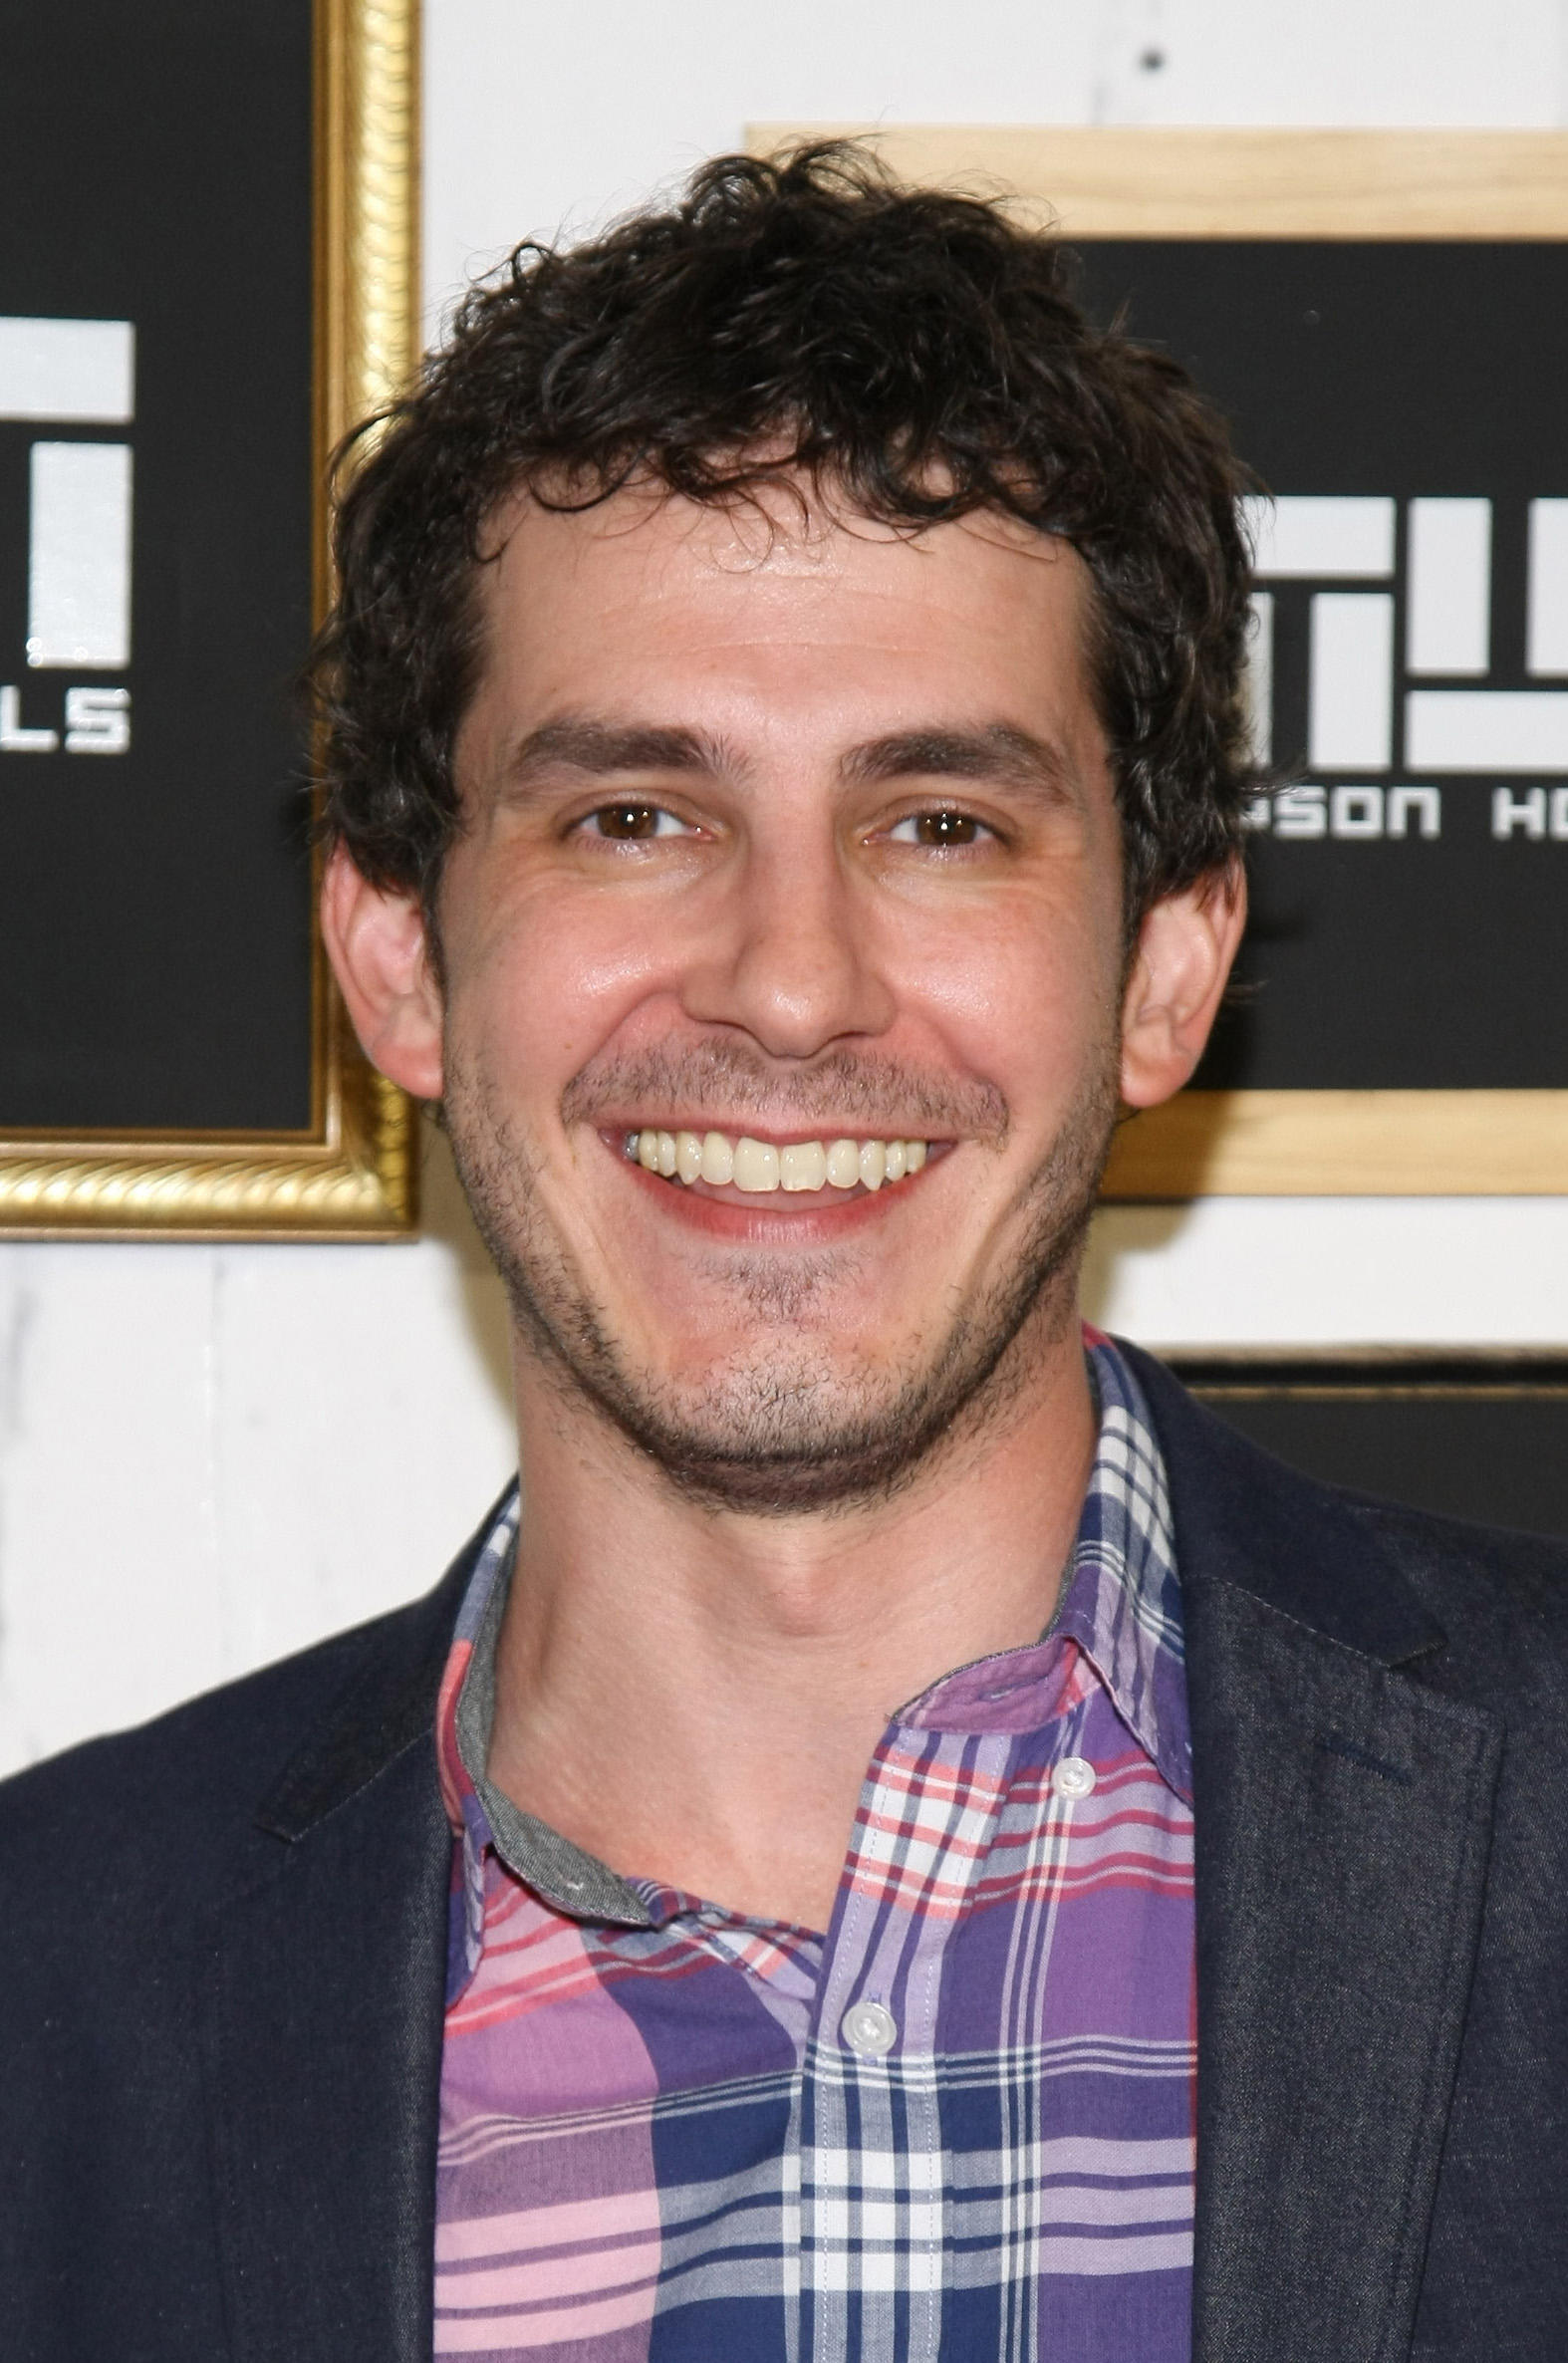 Tate Ellington at the 17th Annual GenArt Film Festival Closing Night Premiere of 'The Kitchen'.